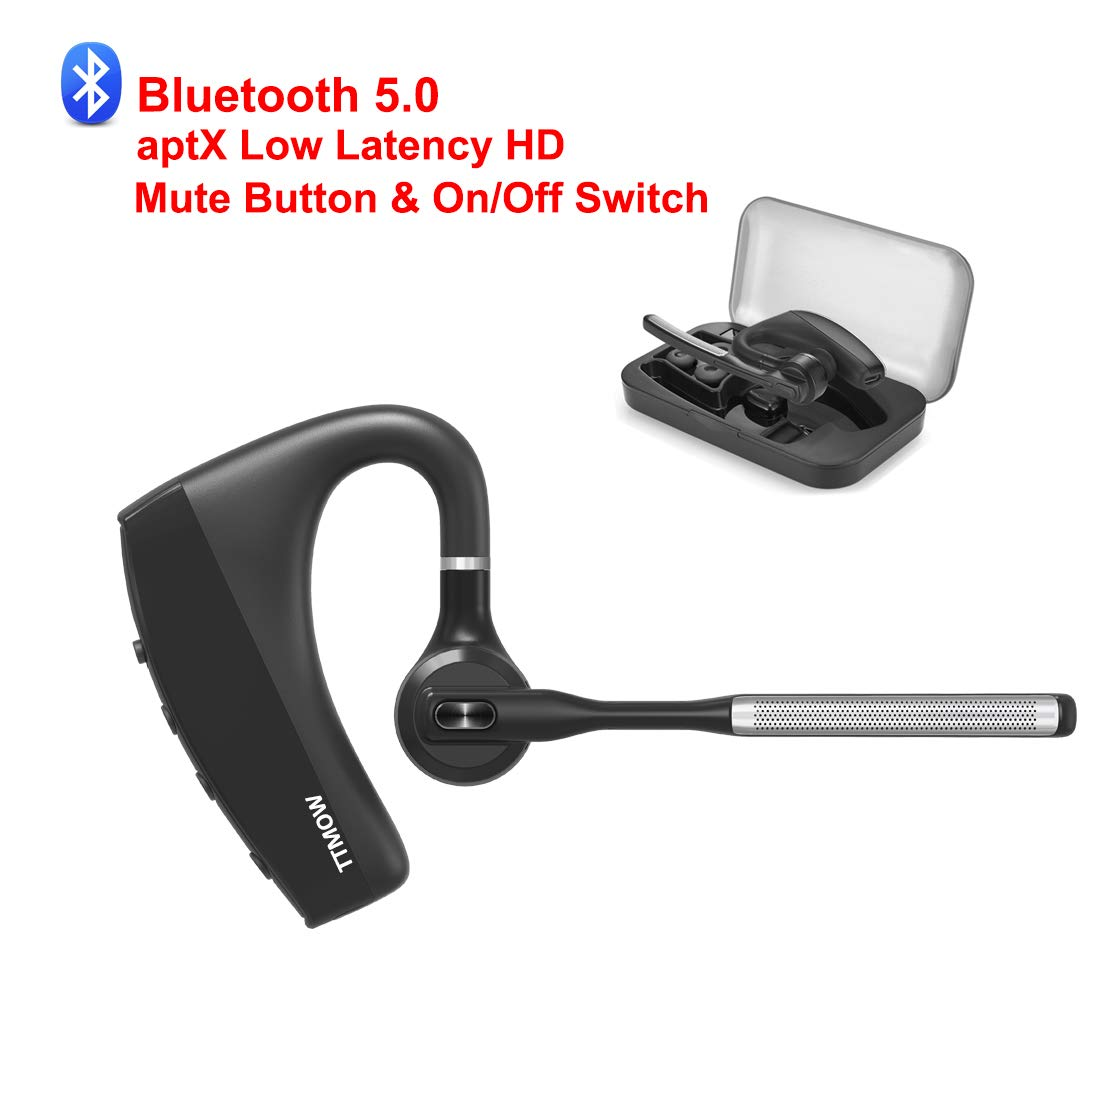 Bluetooth Headset 5.0 Compatible for iPhone Android, TTMOW aptX Low Latency HD Handsfree Wireless Bluetooth Earpiece Single Ear Bluetooth Headsets for Cell Phones and Other Device with Bluetooth by TTMOW